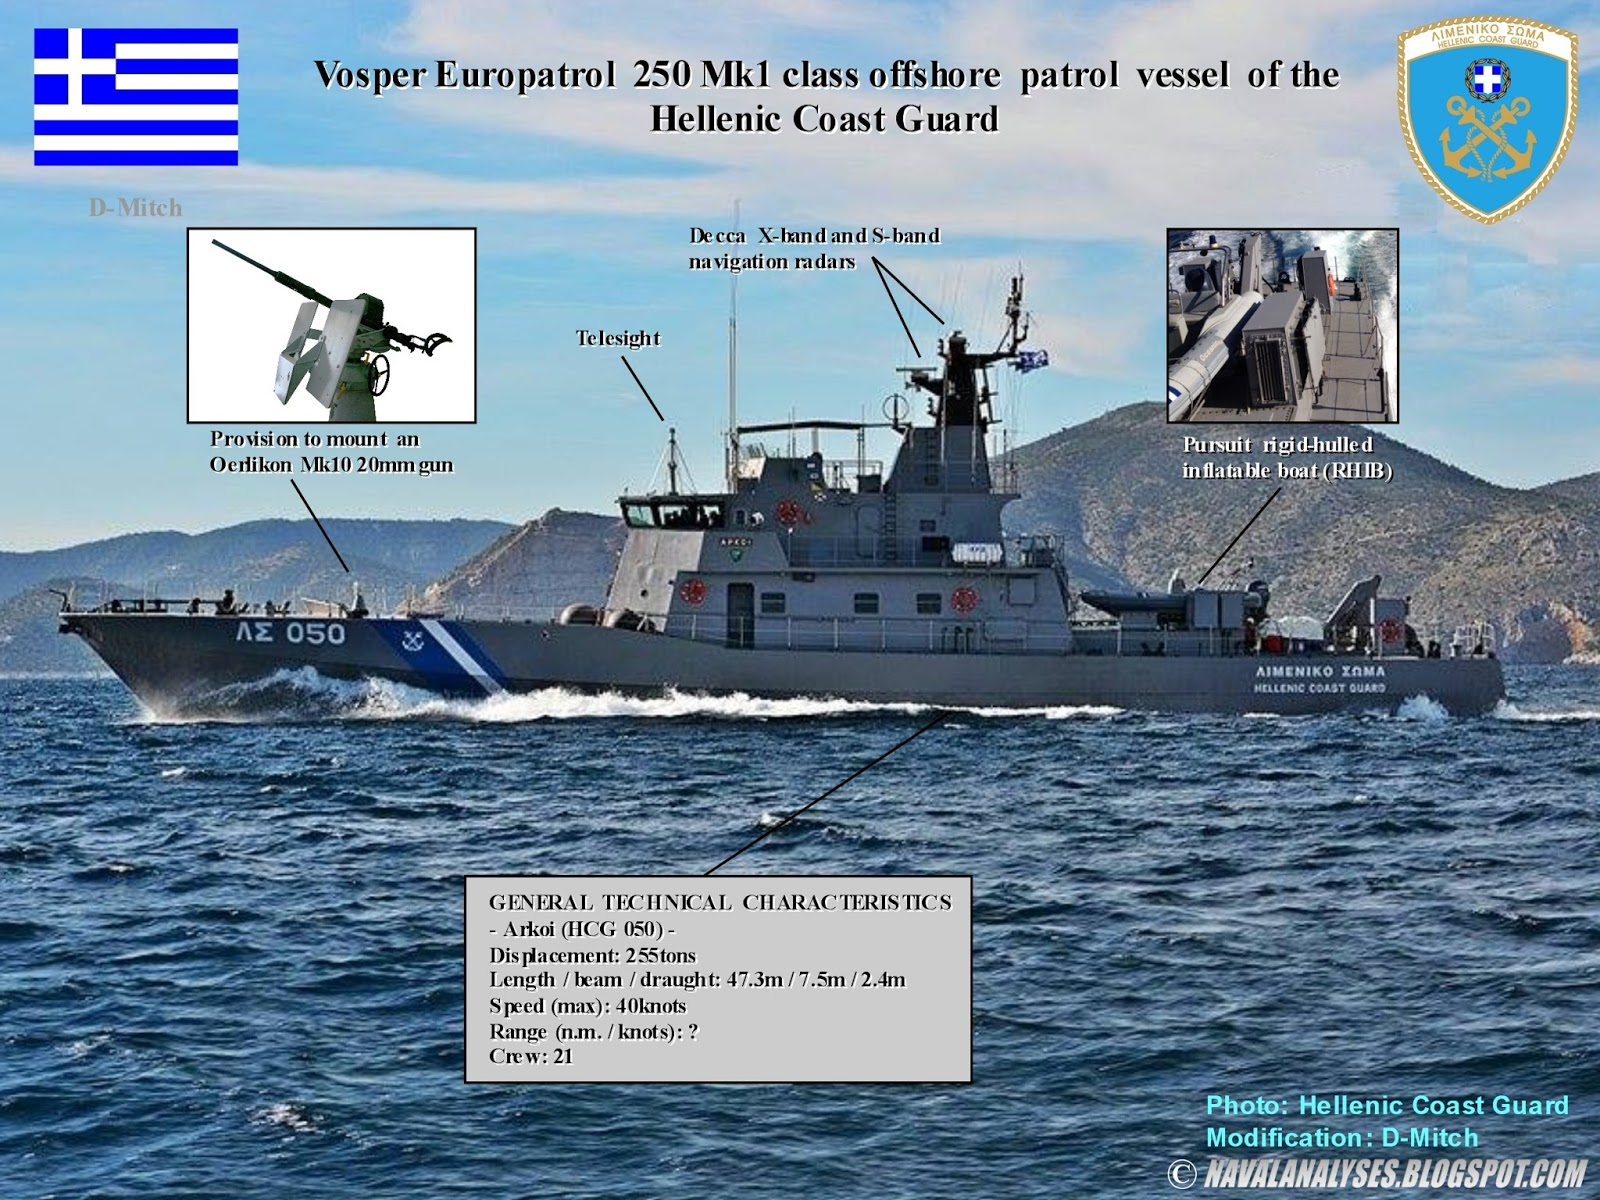 Naval Analyses: INFOGRAPHICS OF COAST GUARD VESSELS #3 ...